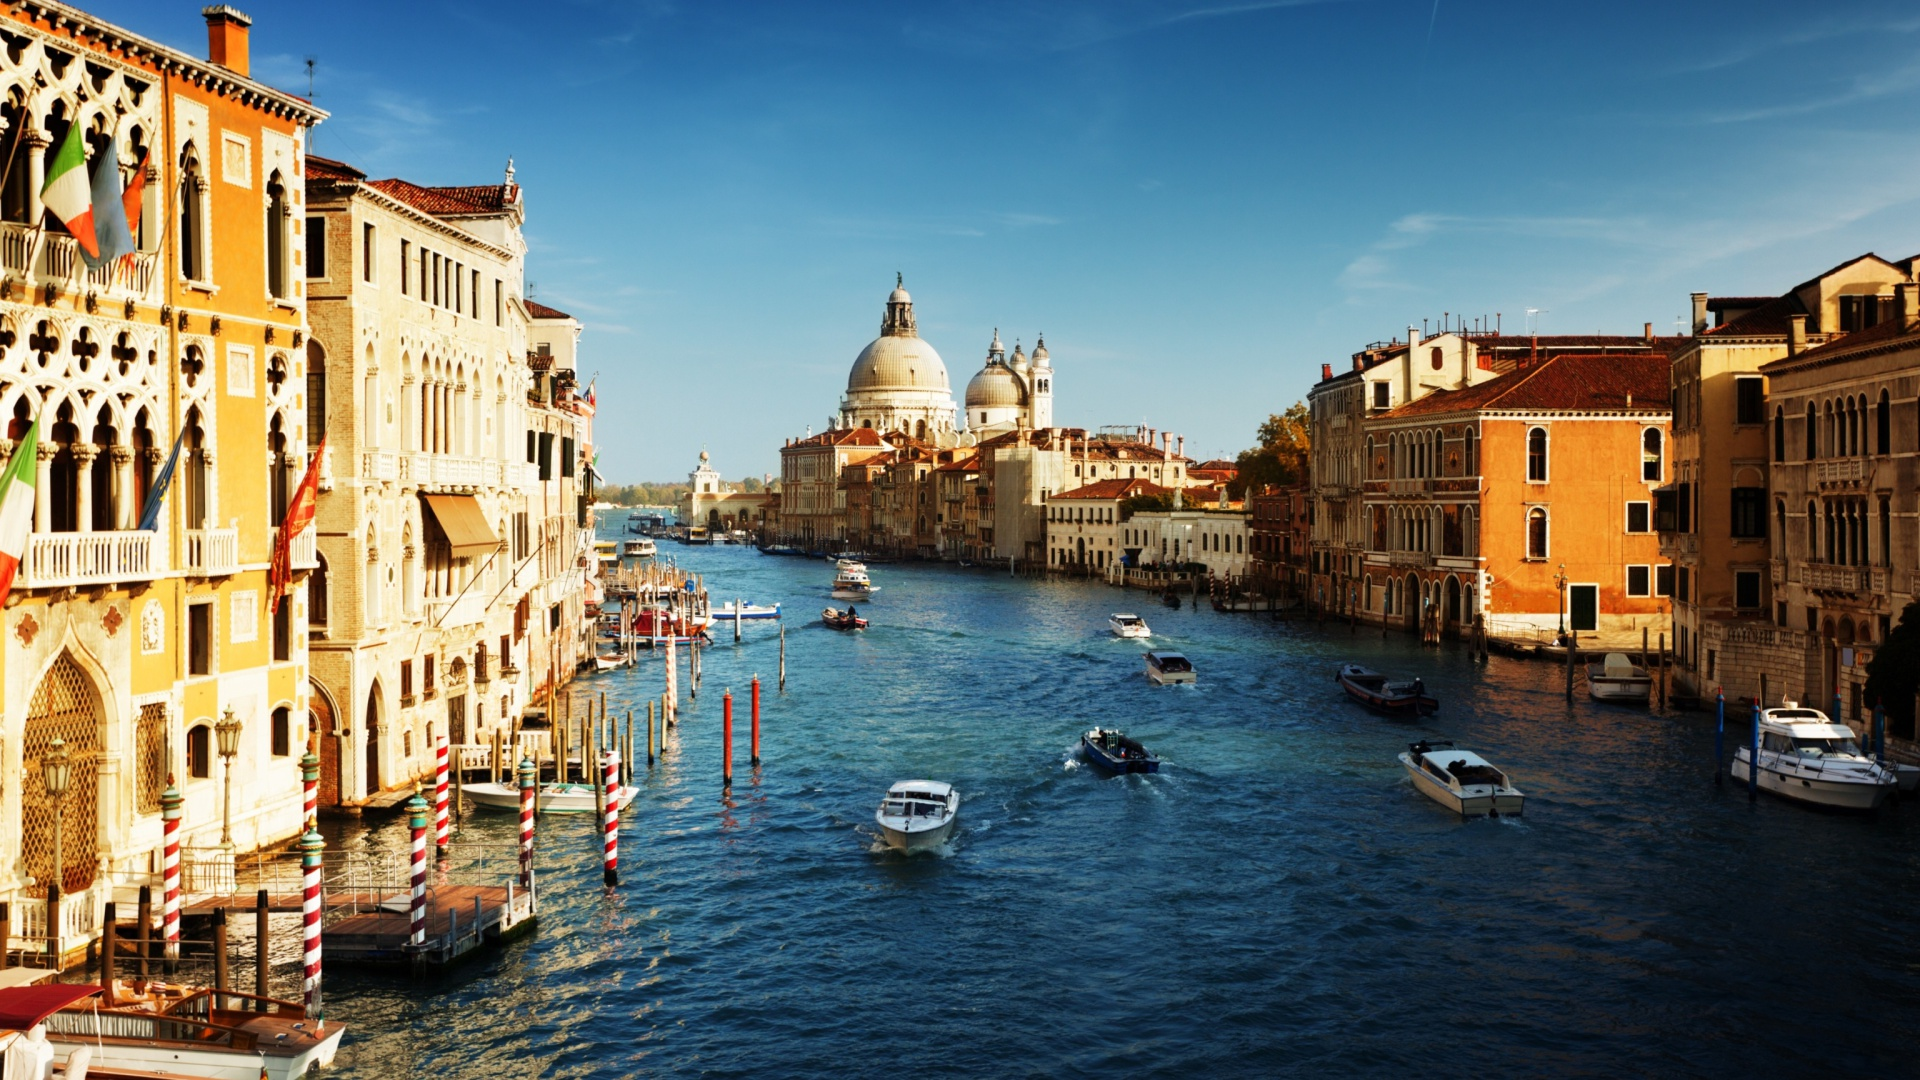 The Grand Canal 1920x1080 wallpaper1920X1080 wallpaper screensaver 1920x1080